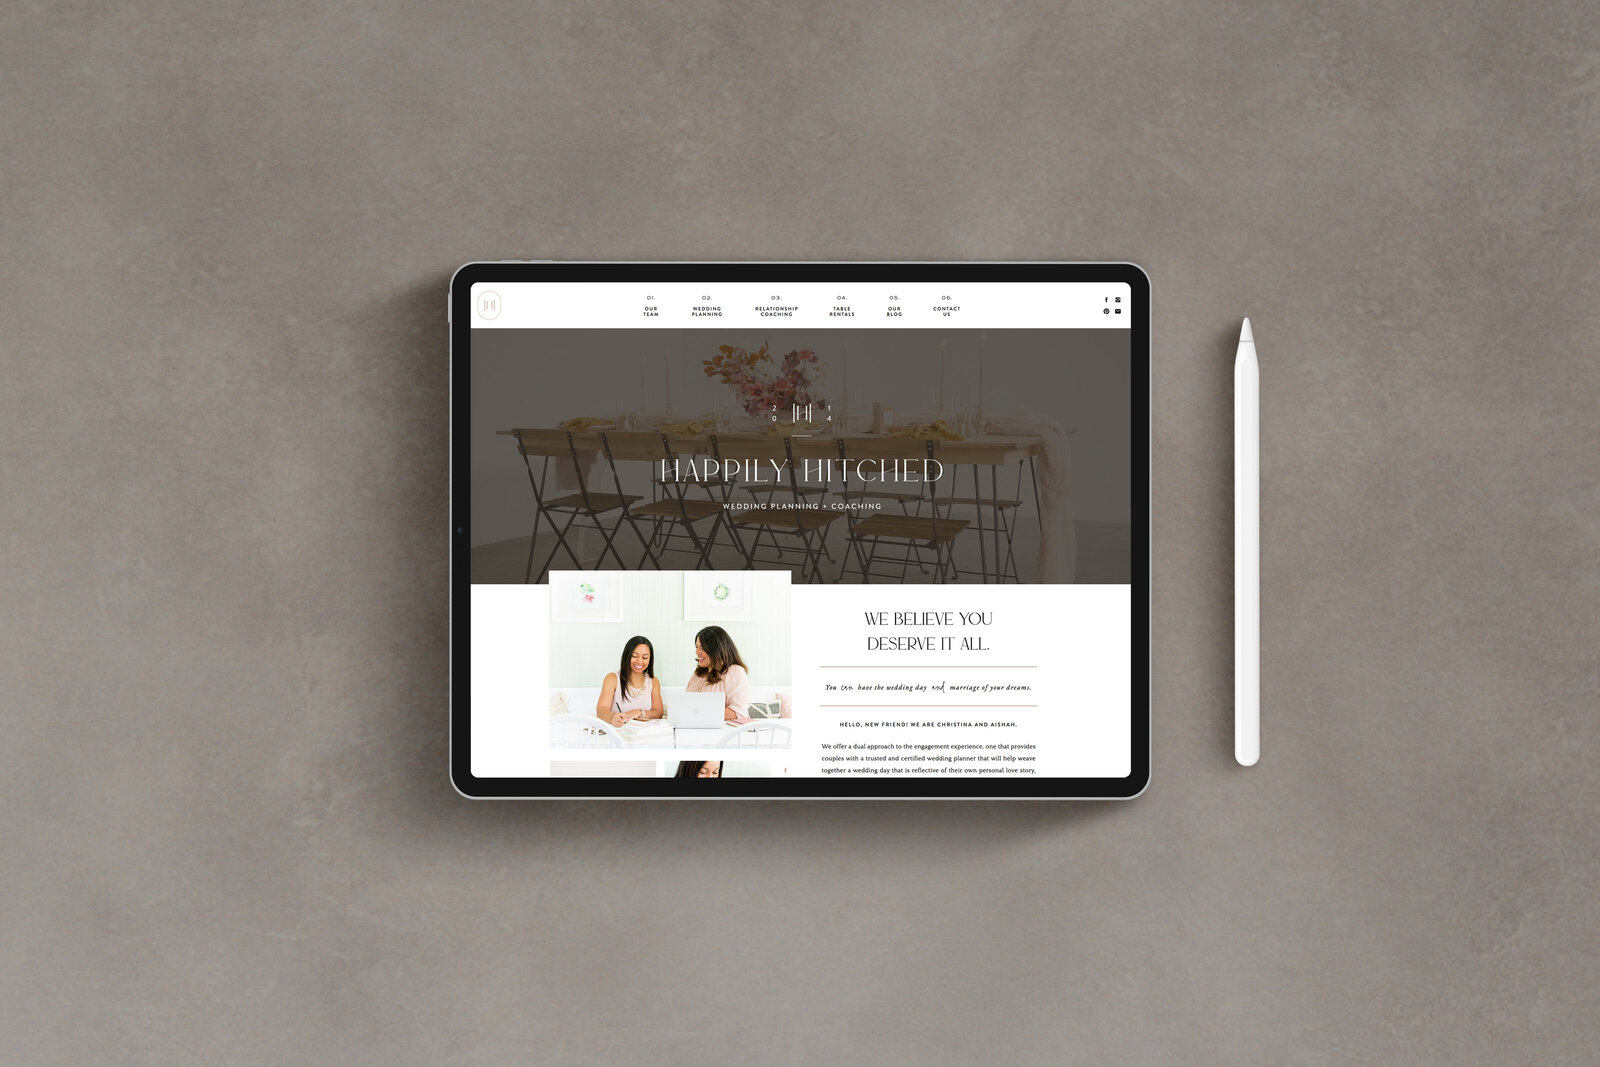 Happily Hitched - Custom Brand Logo and Showit Website Design by With Grace and Gold - 29